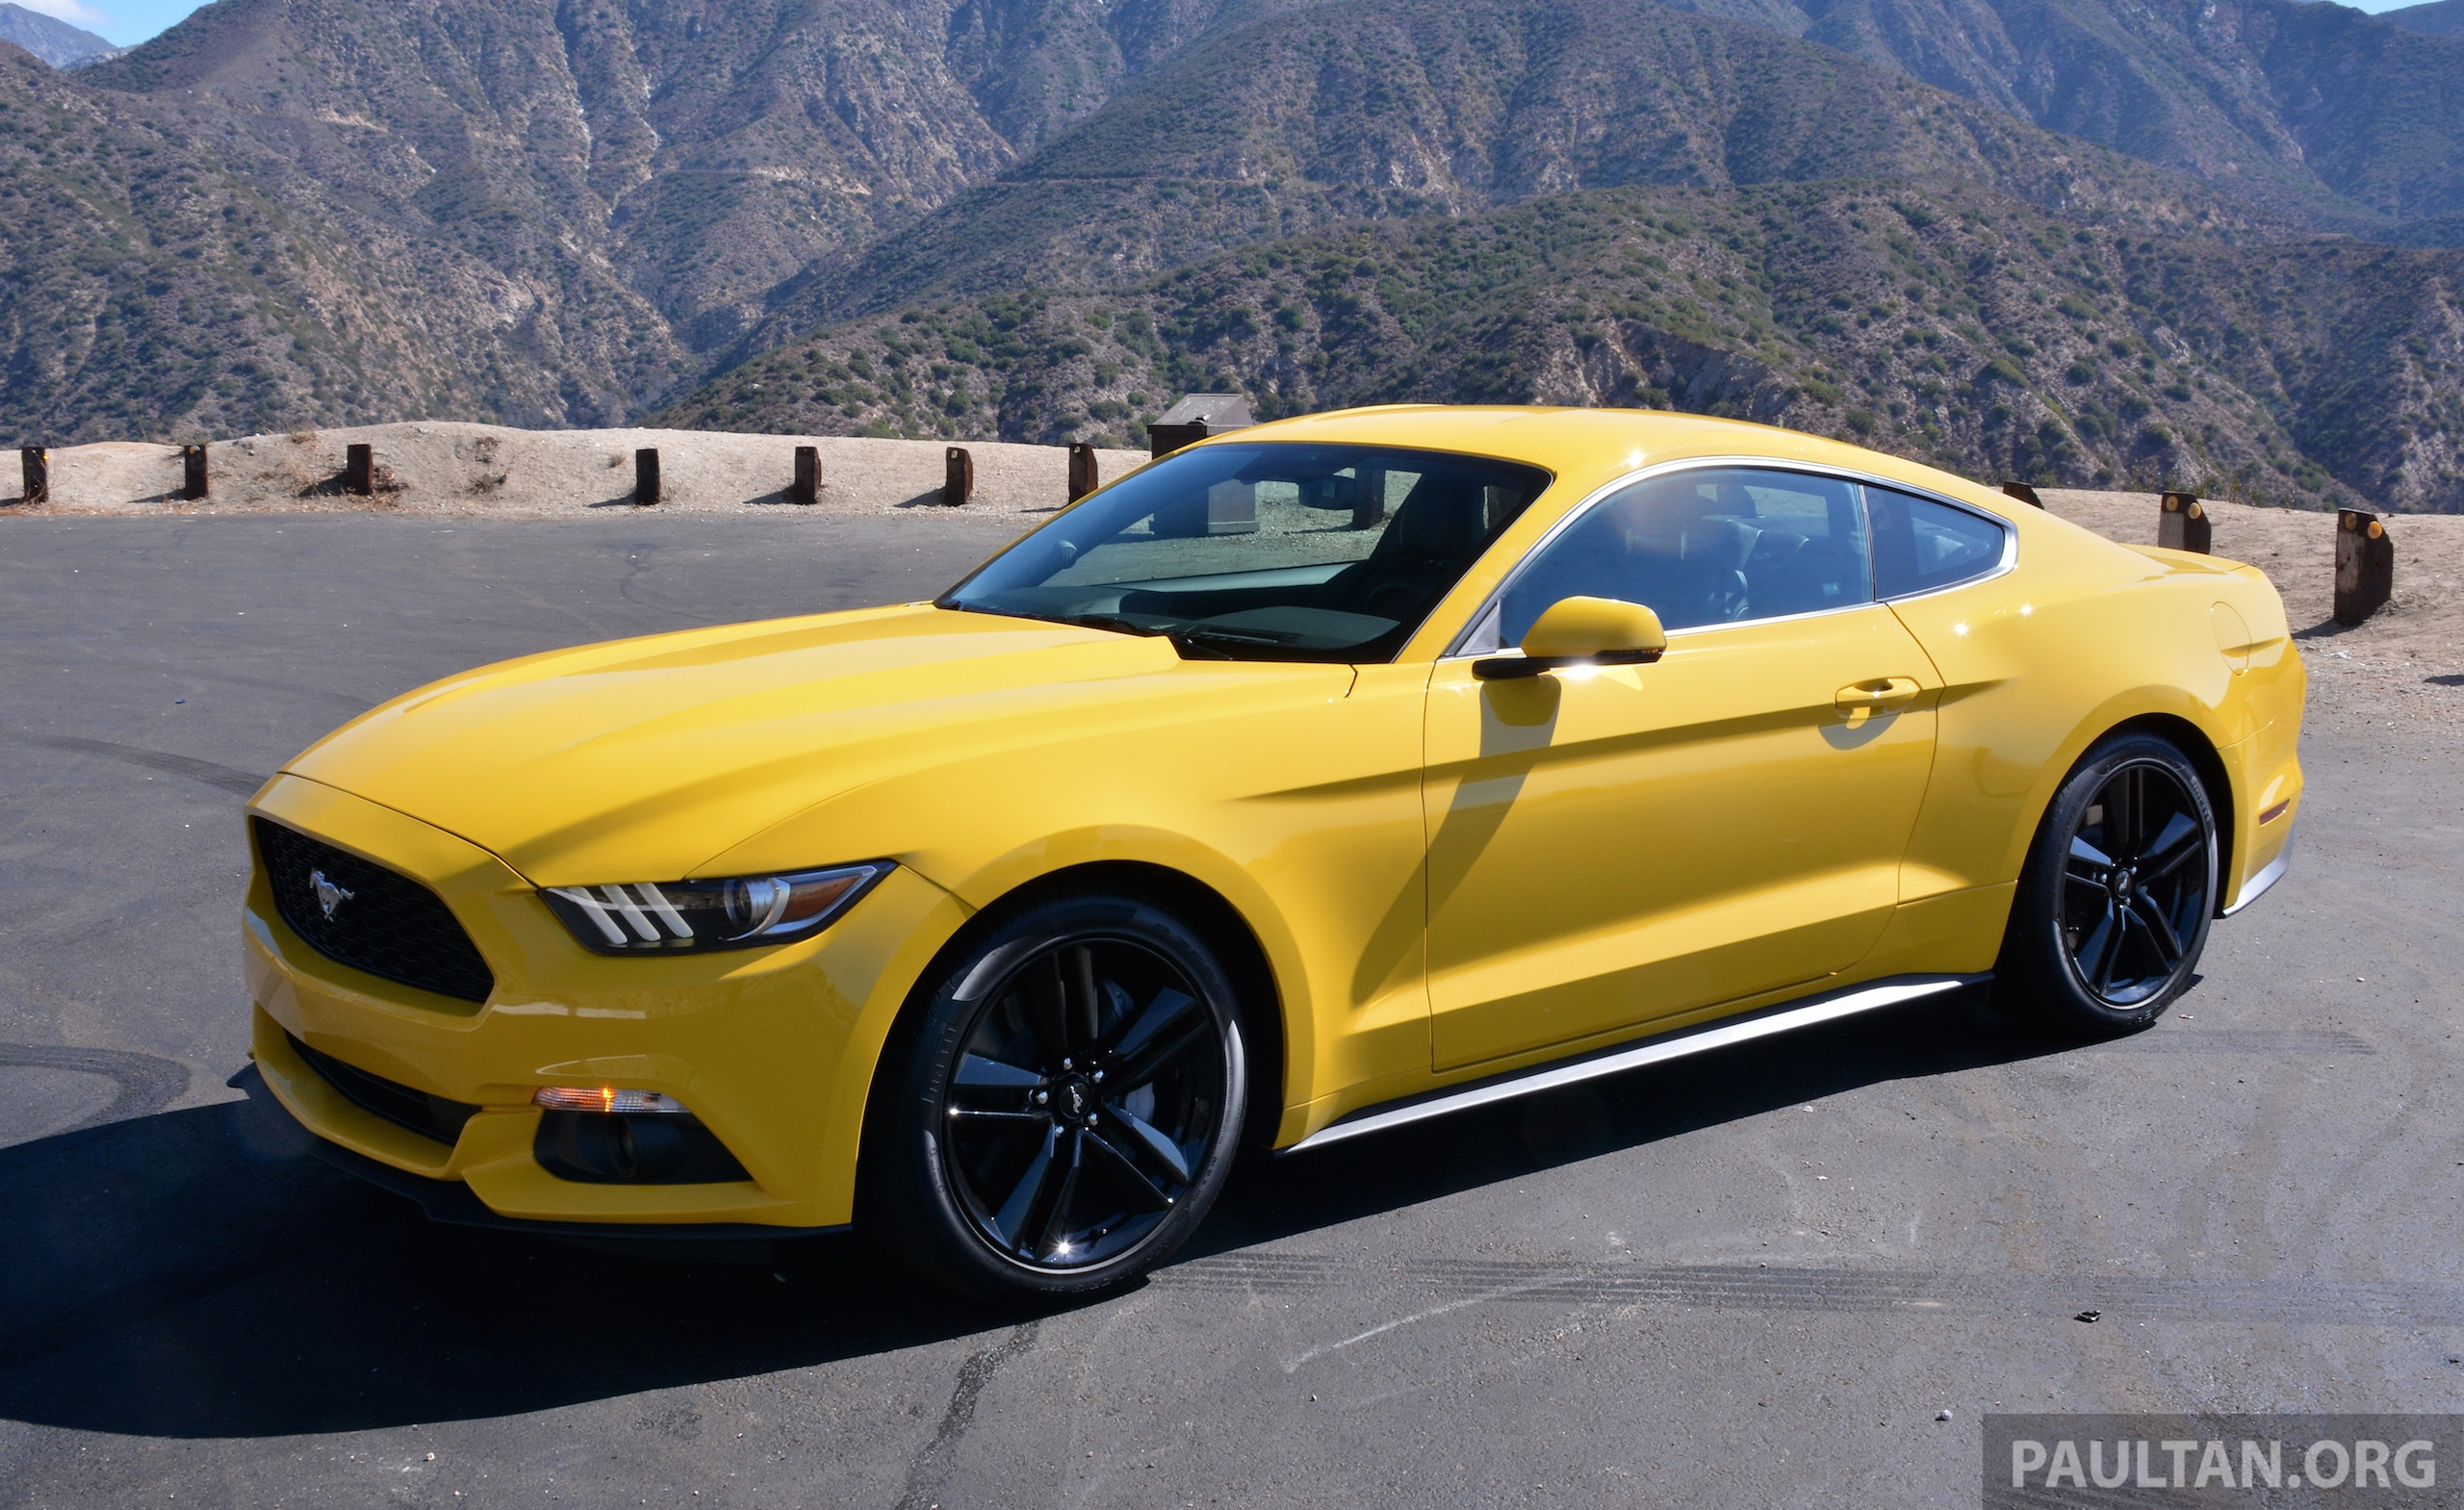 Driven 2015 Ford Mustang 2 3 Ecoboost And 5 0 Gt Image 310067